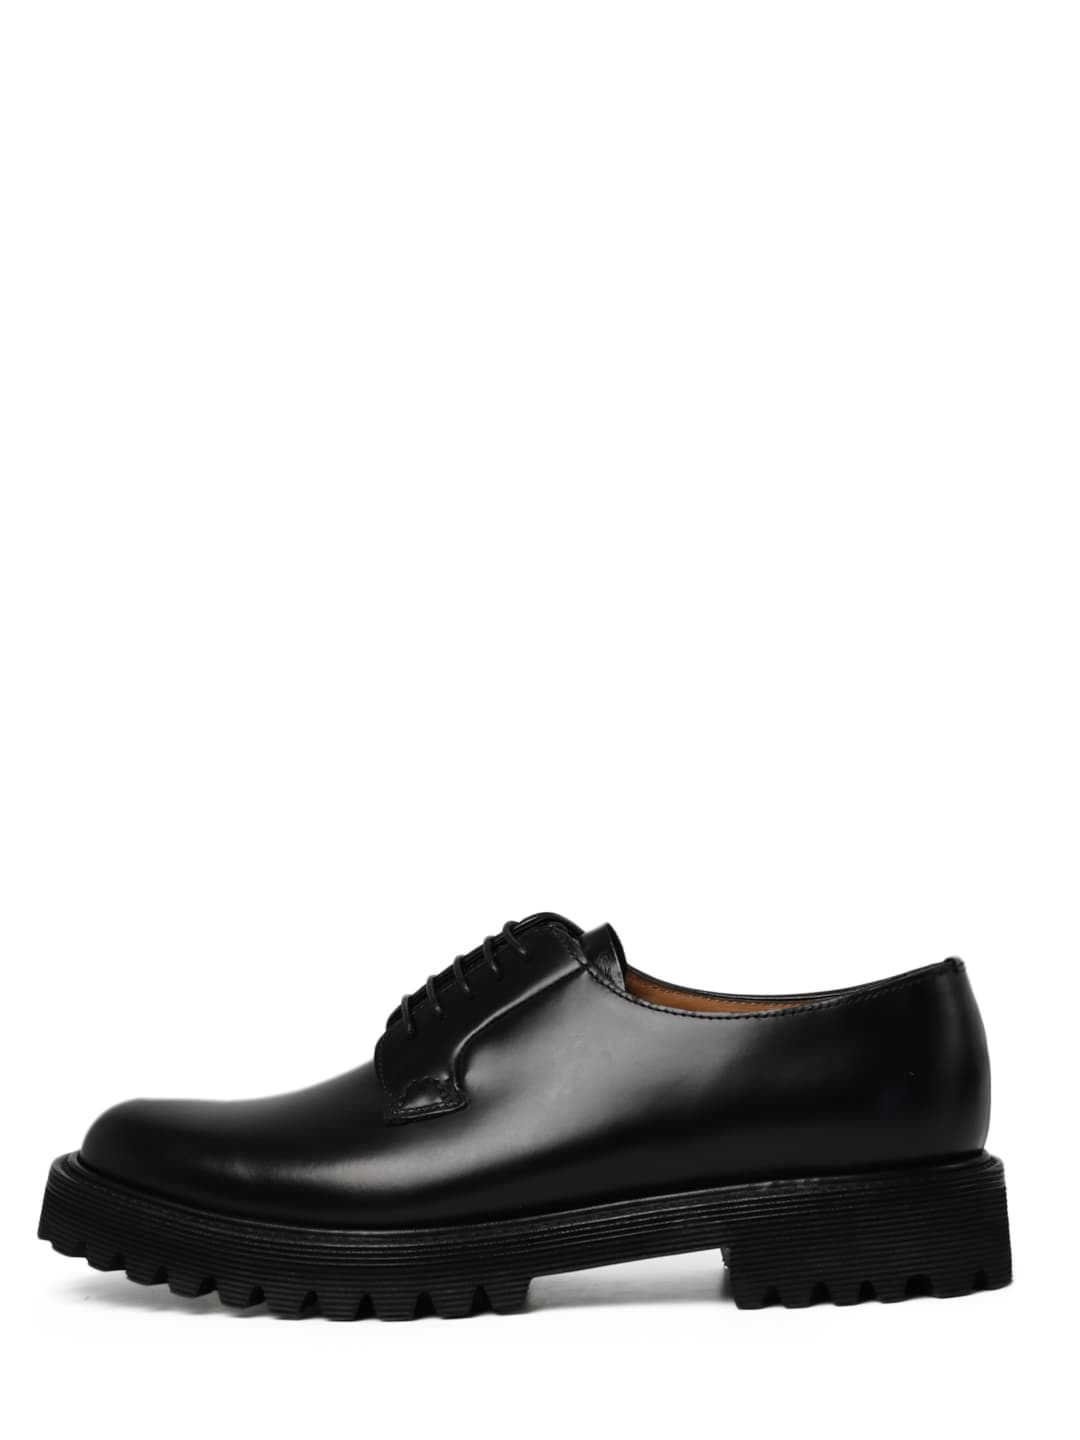 Churchs Lace-up Black Leather